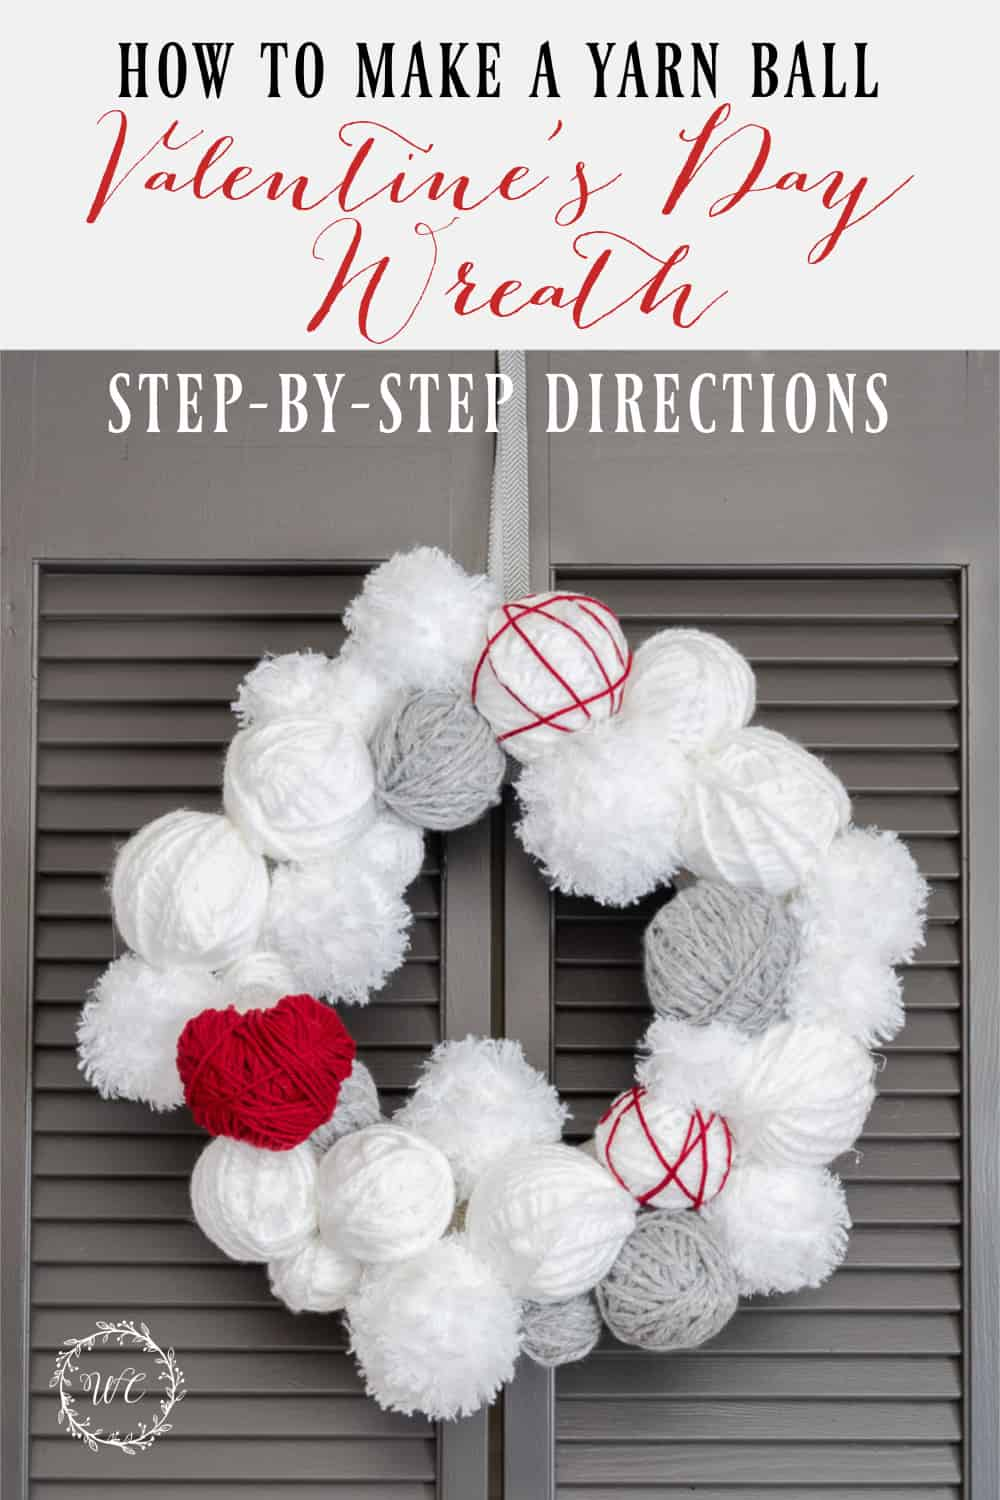 Pinterest graphic for blog post about making a Valentine's Day wreath